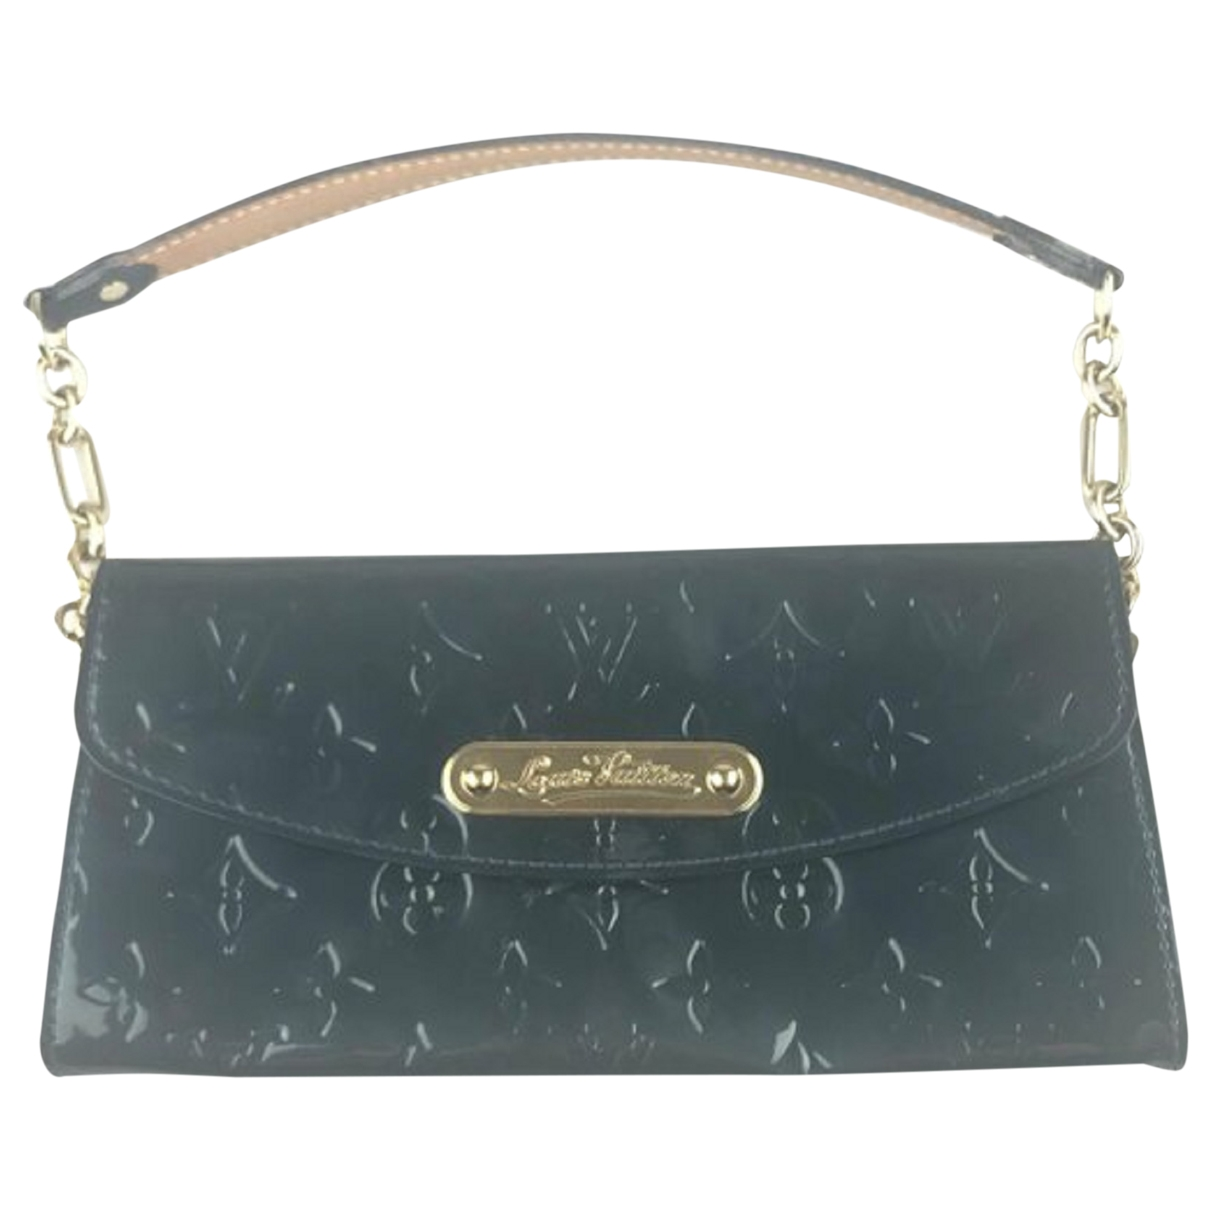 Louis Vuitton \N Green Patent leather Clutch bag for Women \N